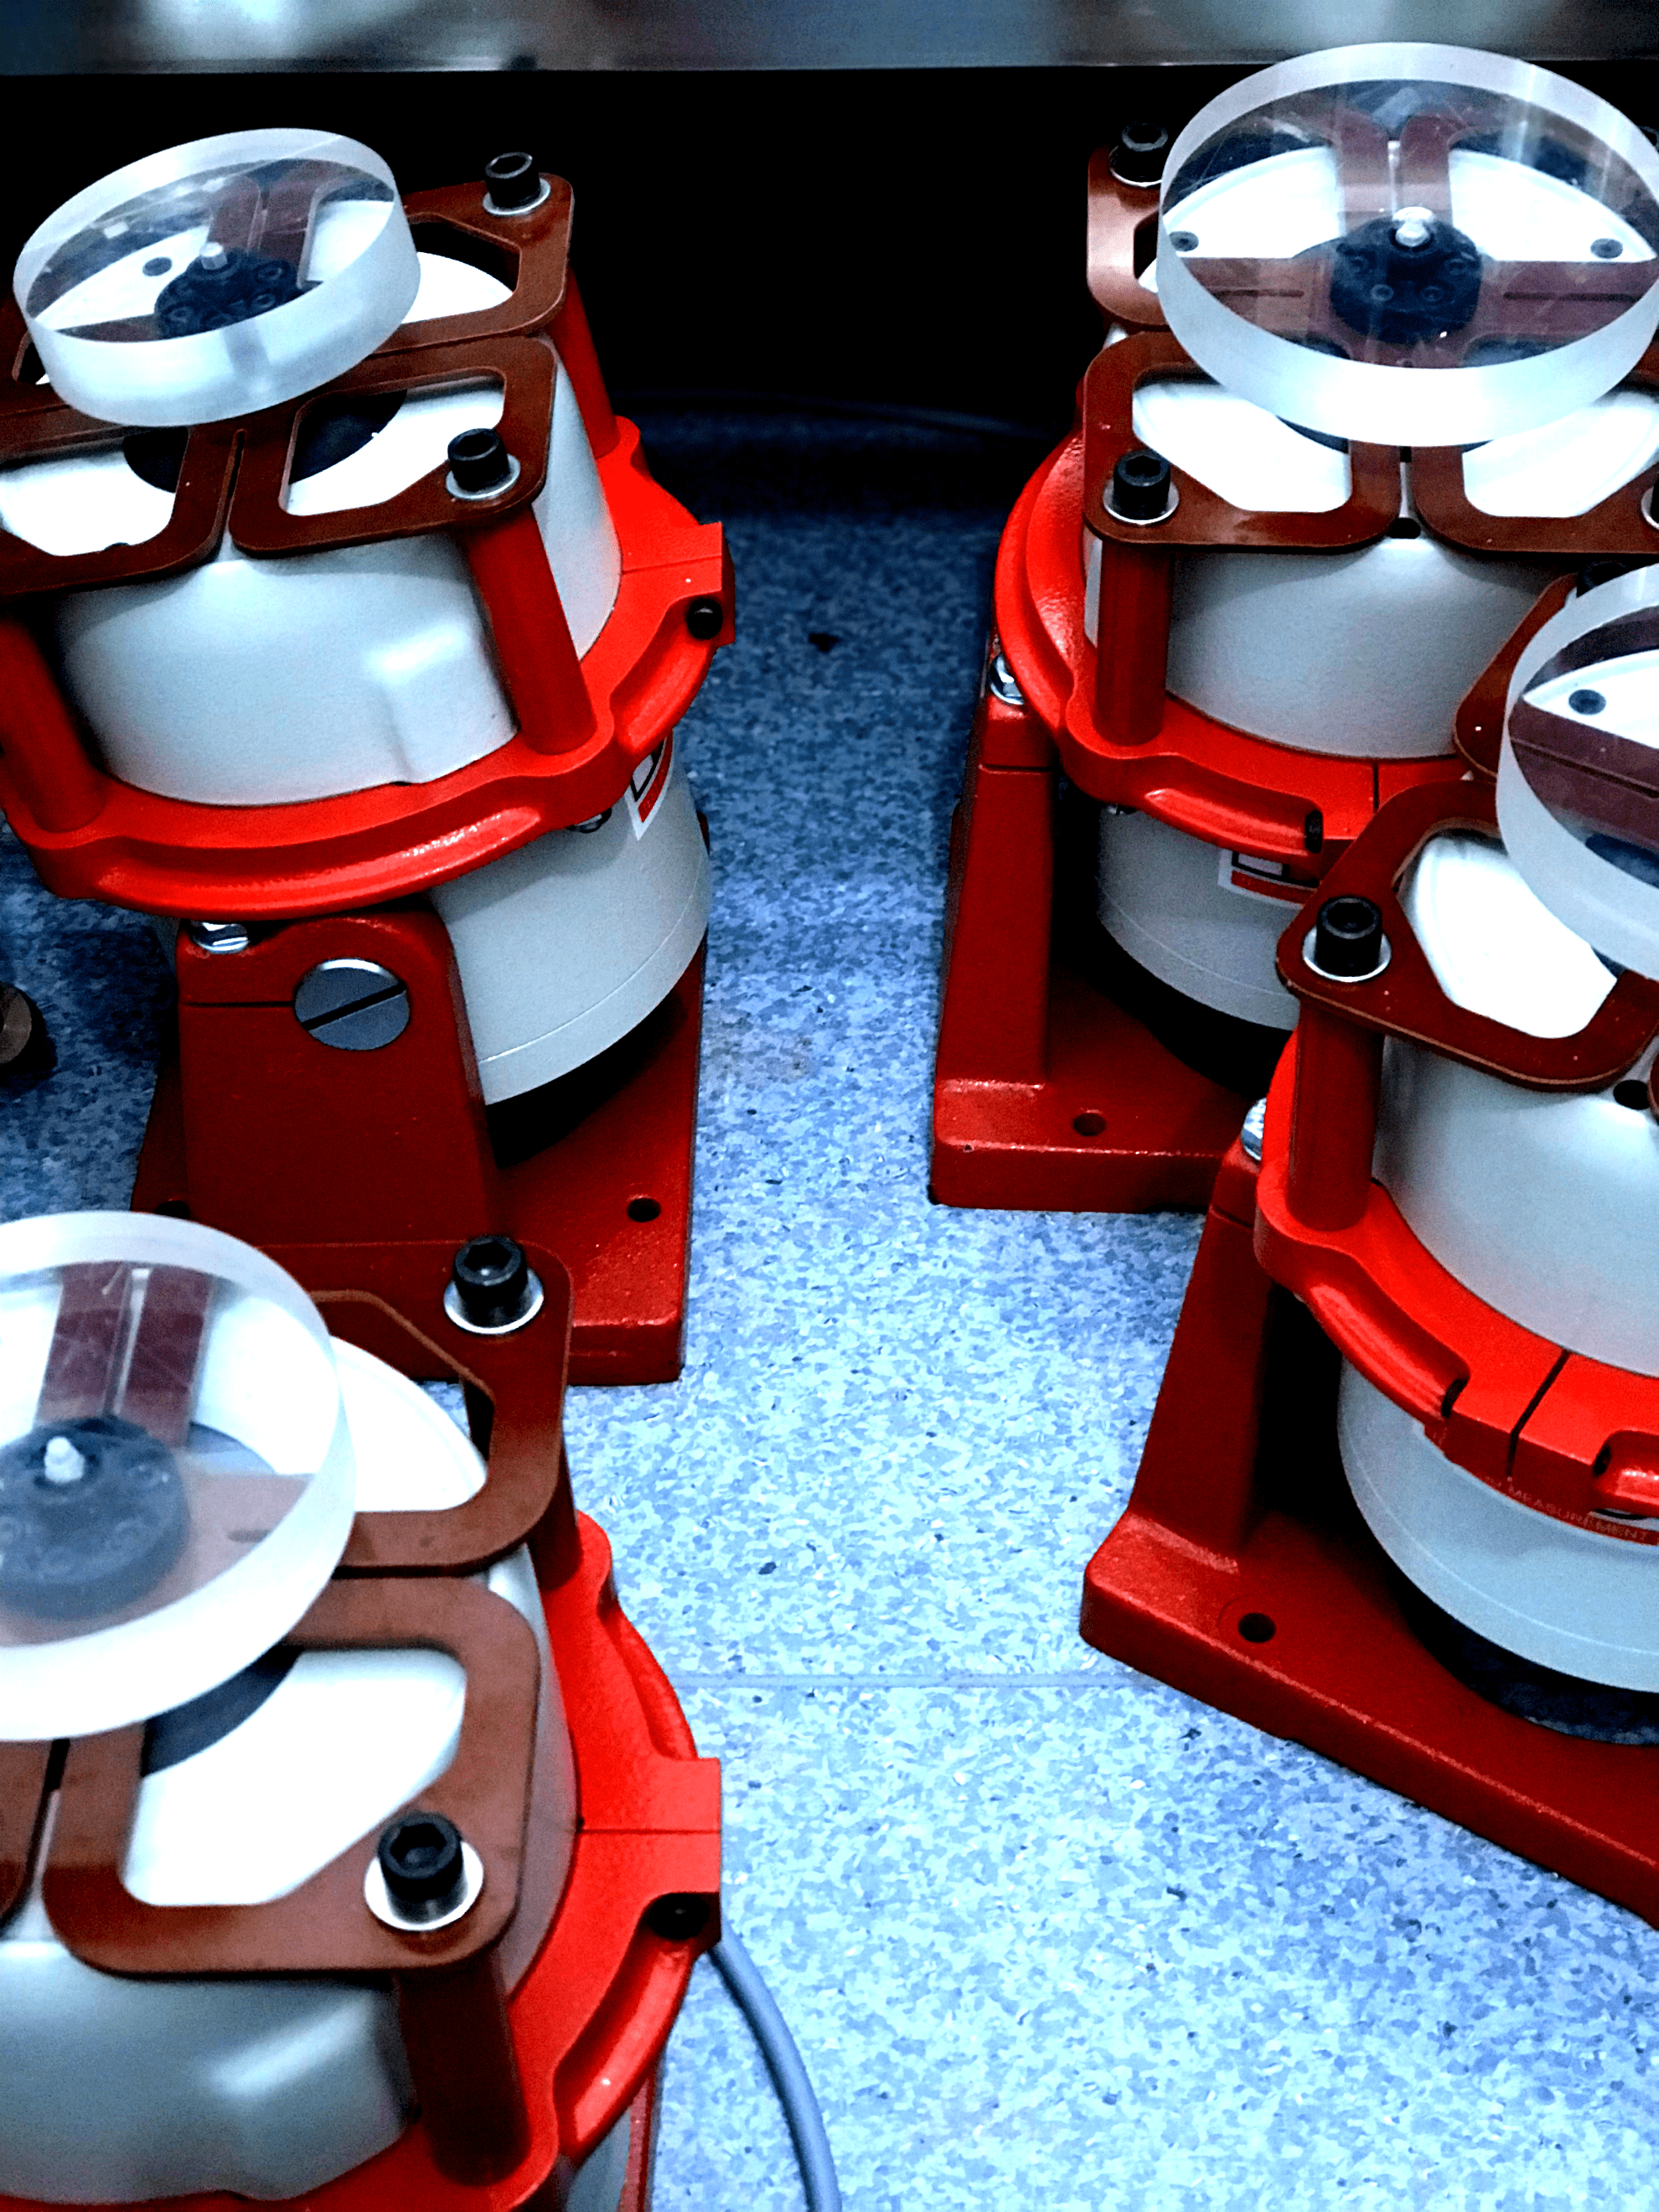 Closeup of four red vibrotactile foot shakers